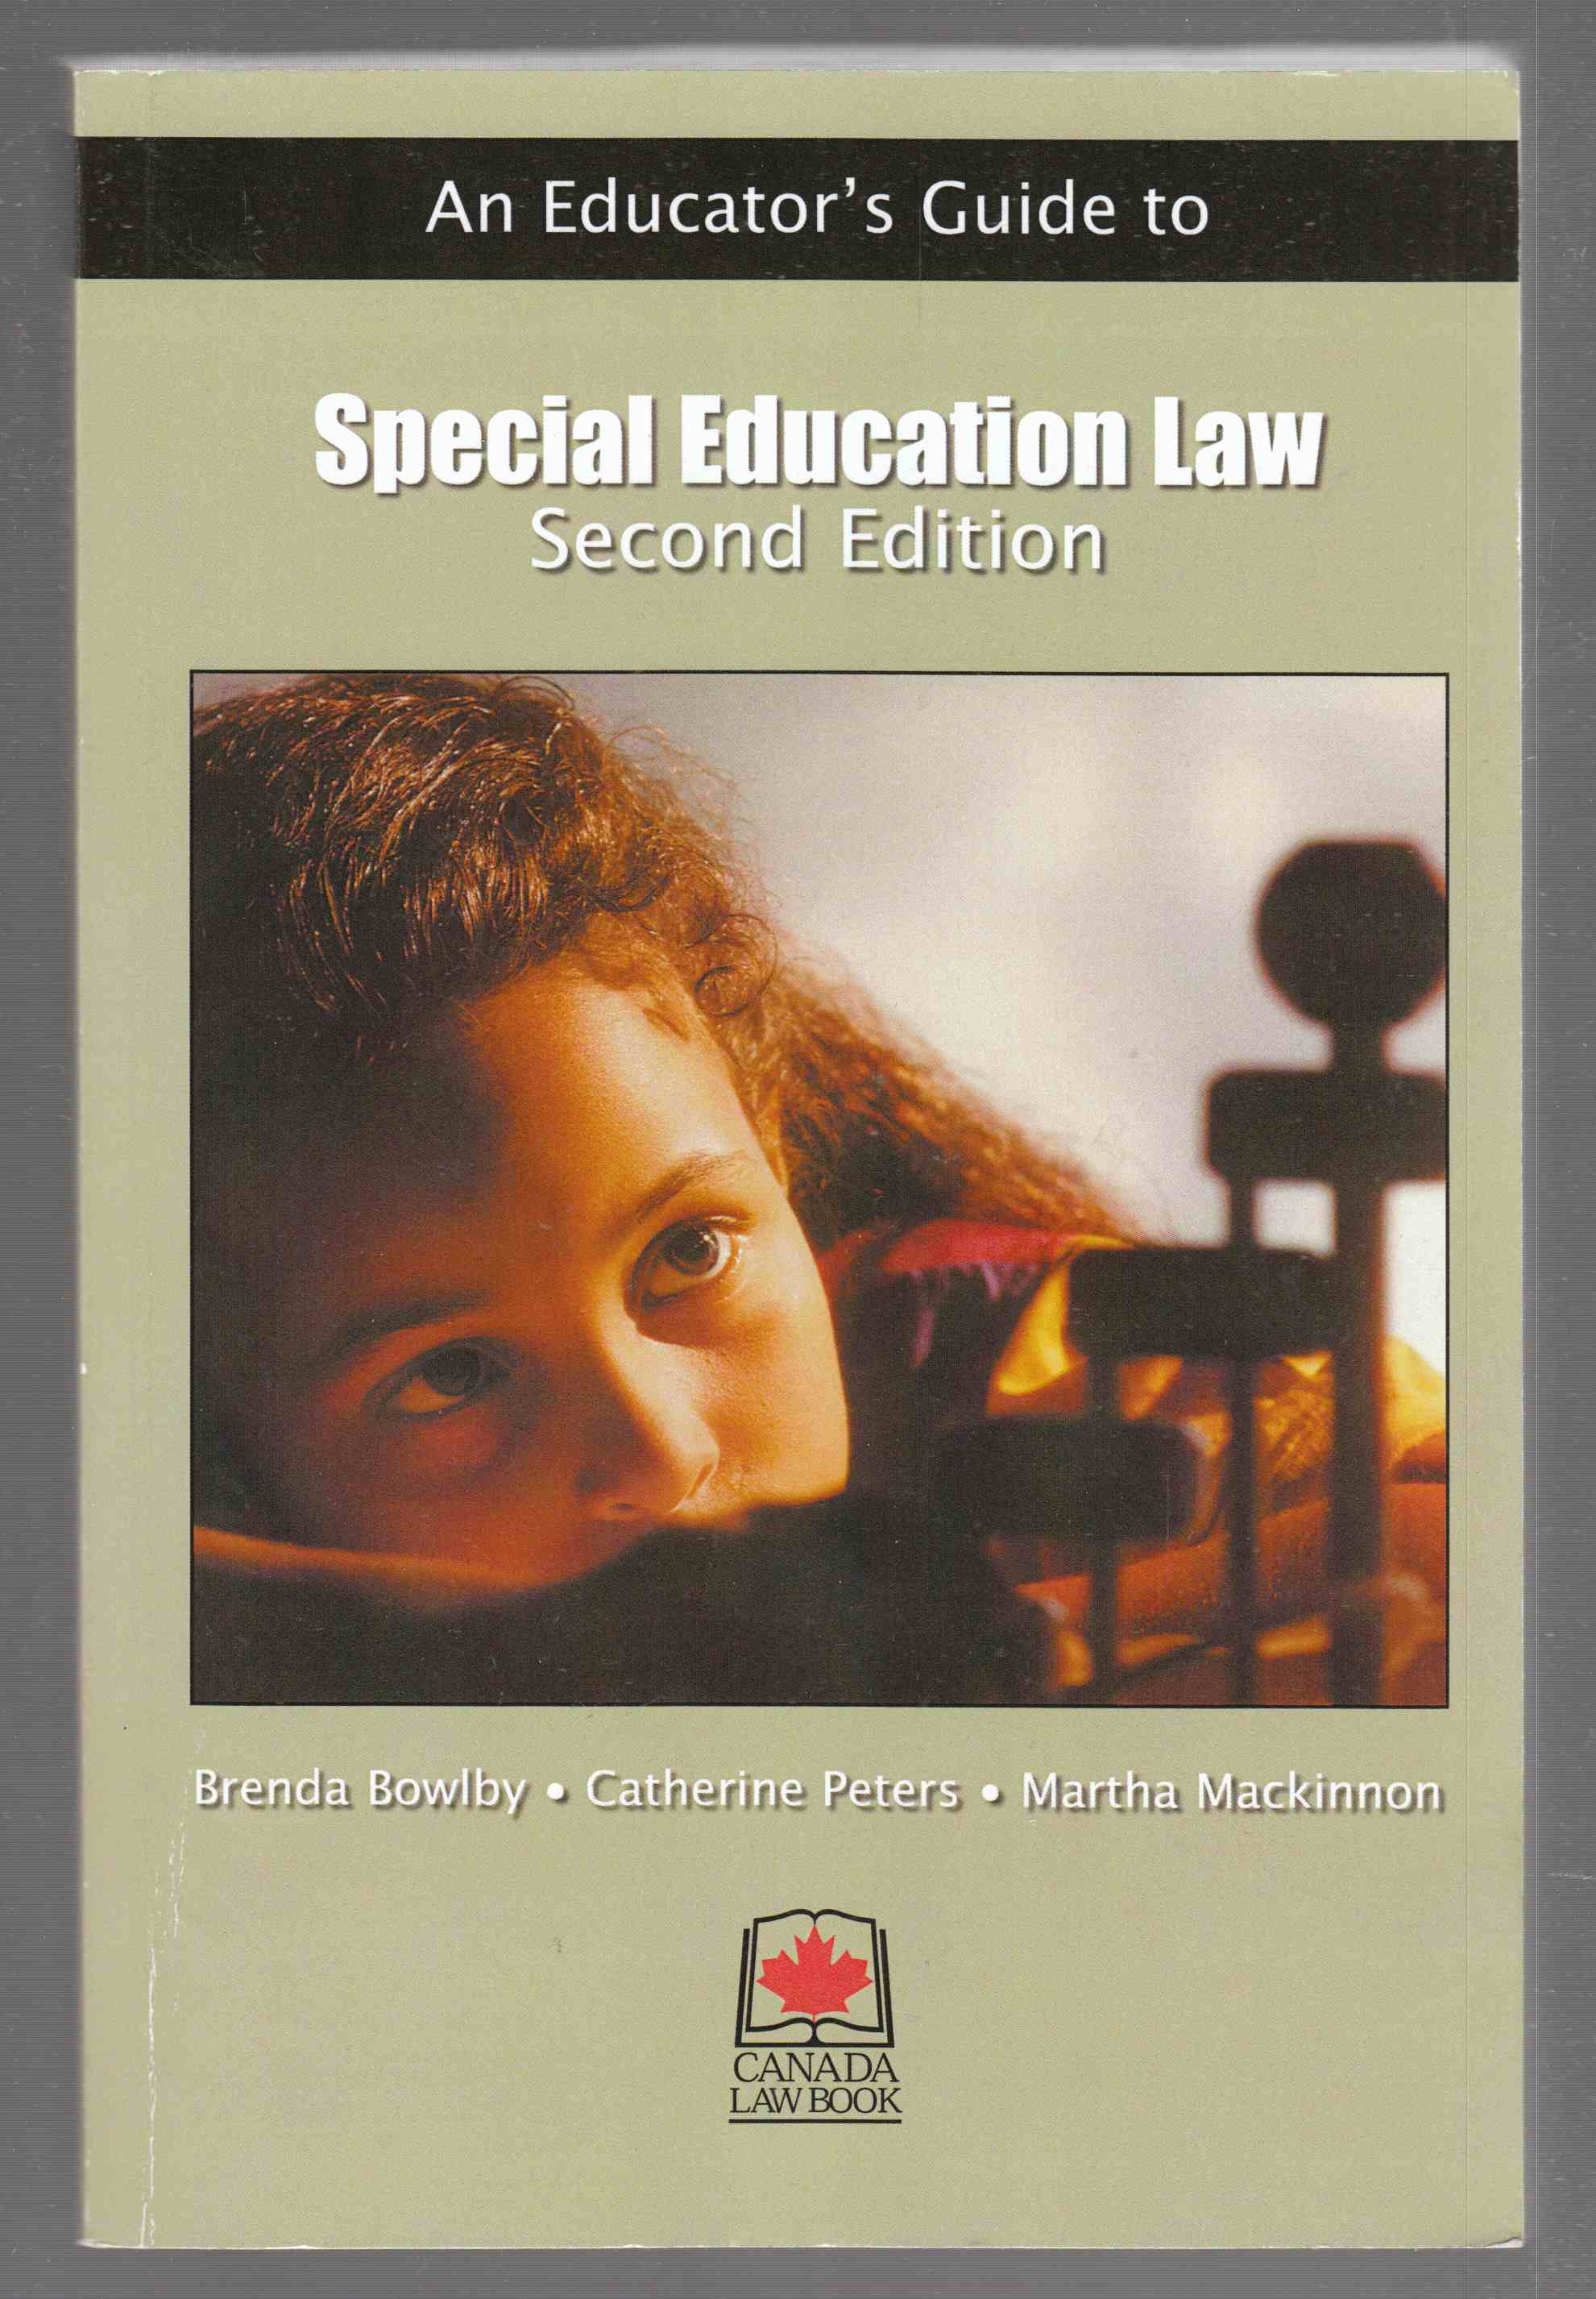 Image for An Educator's Guide to Special Education Law Second Edition